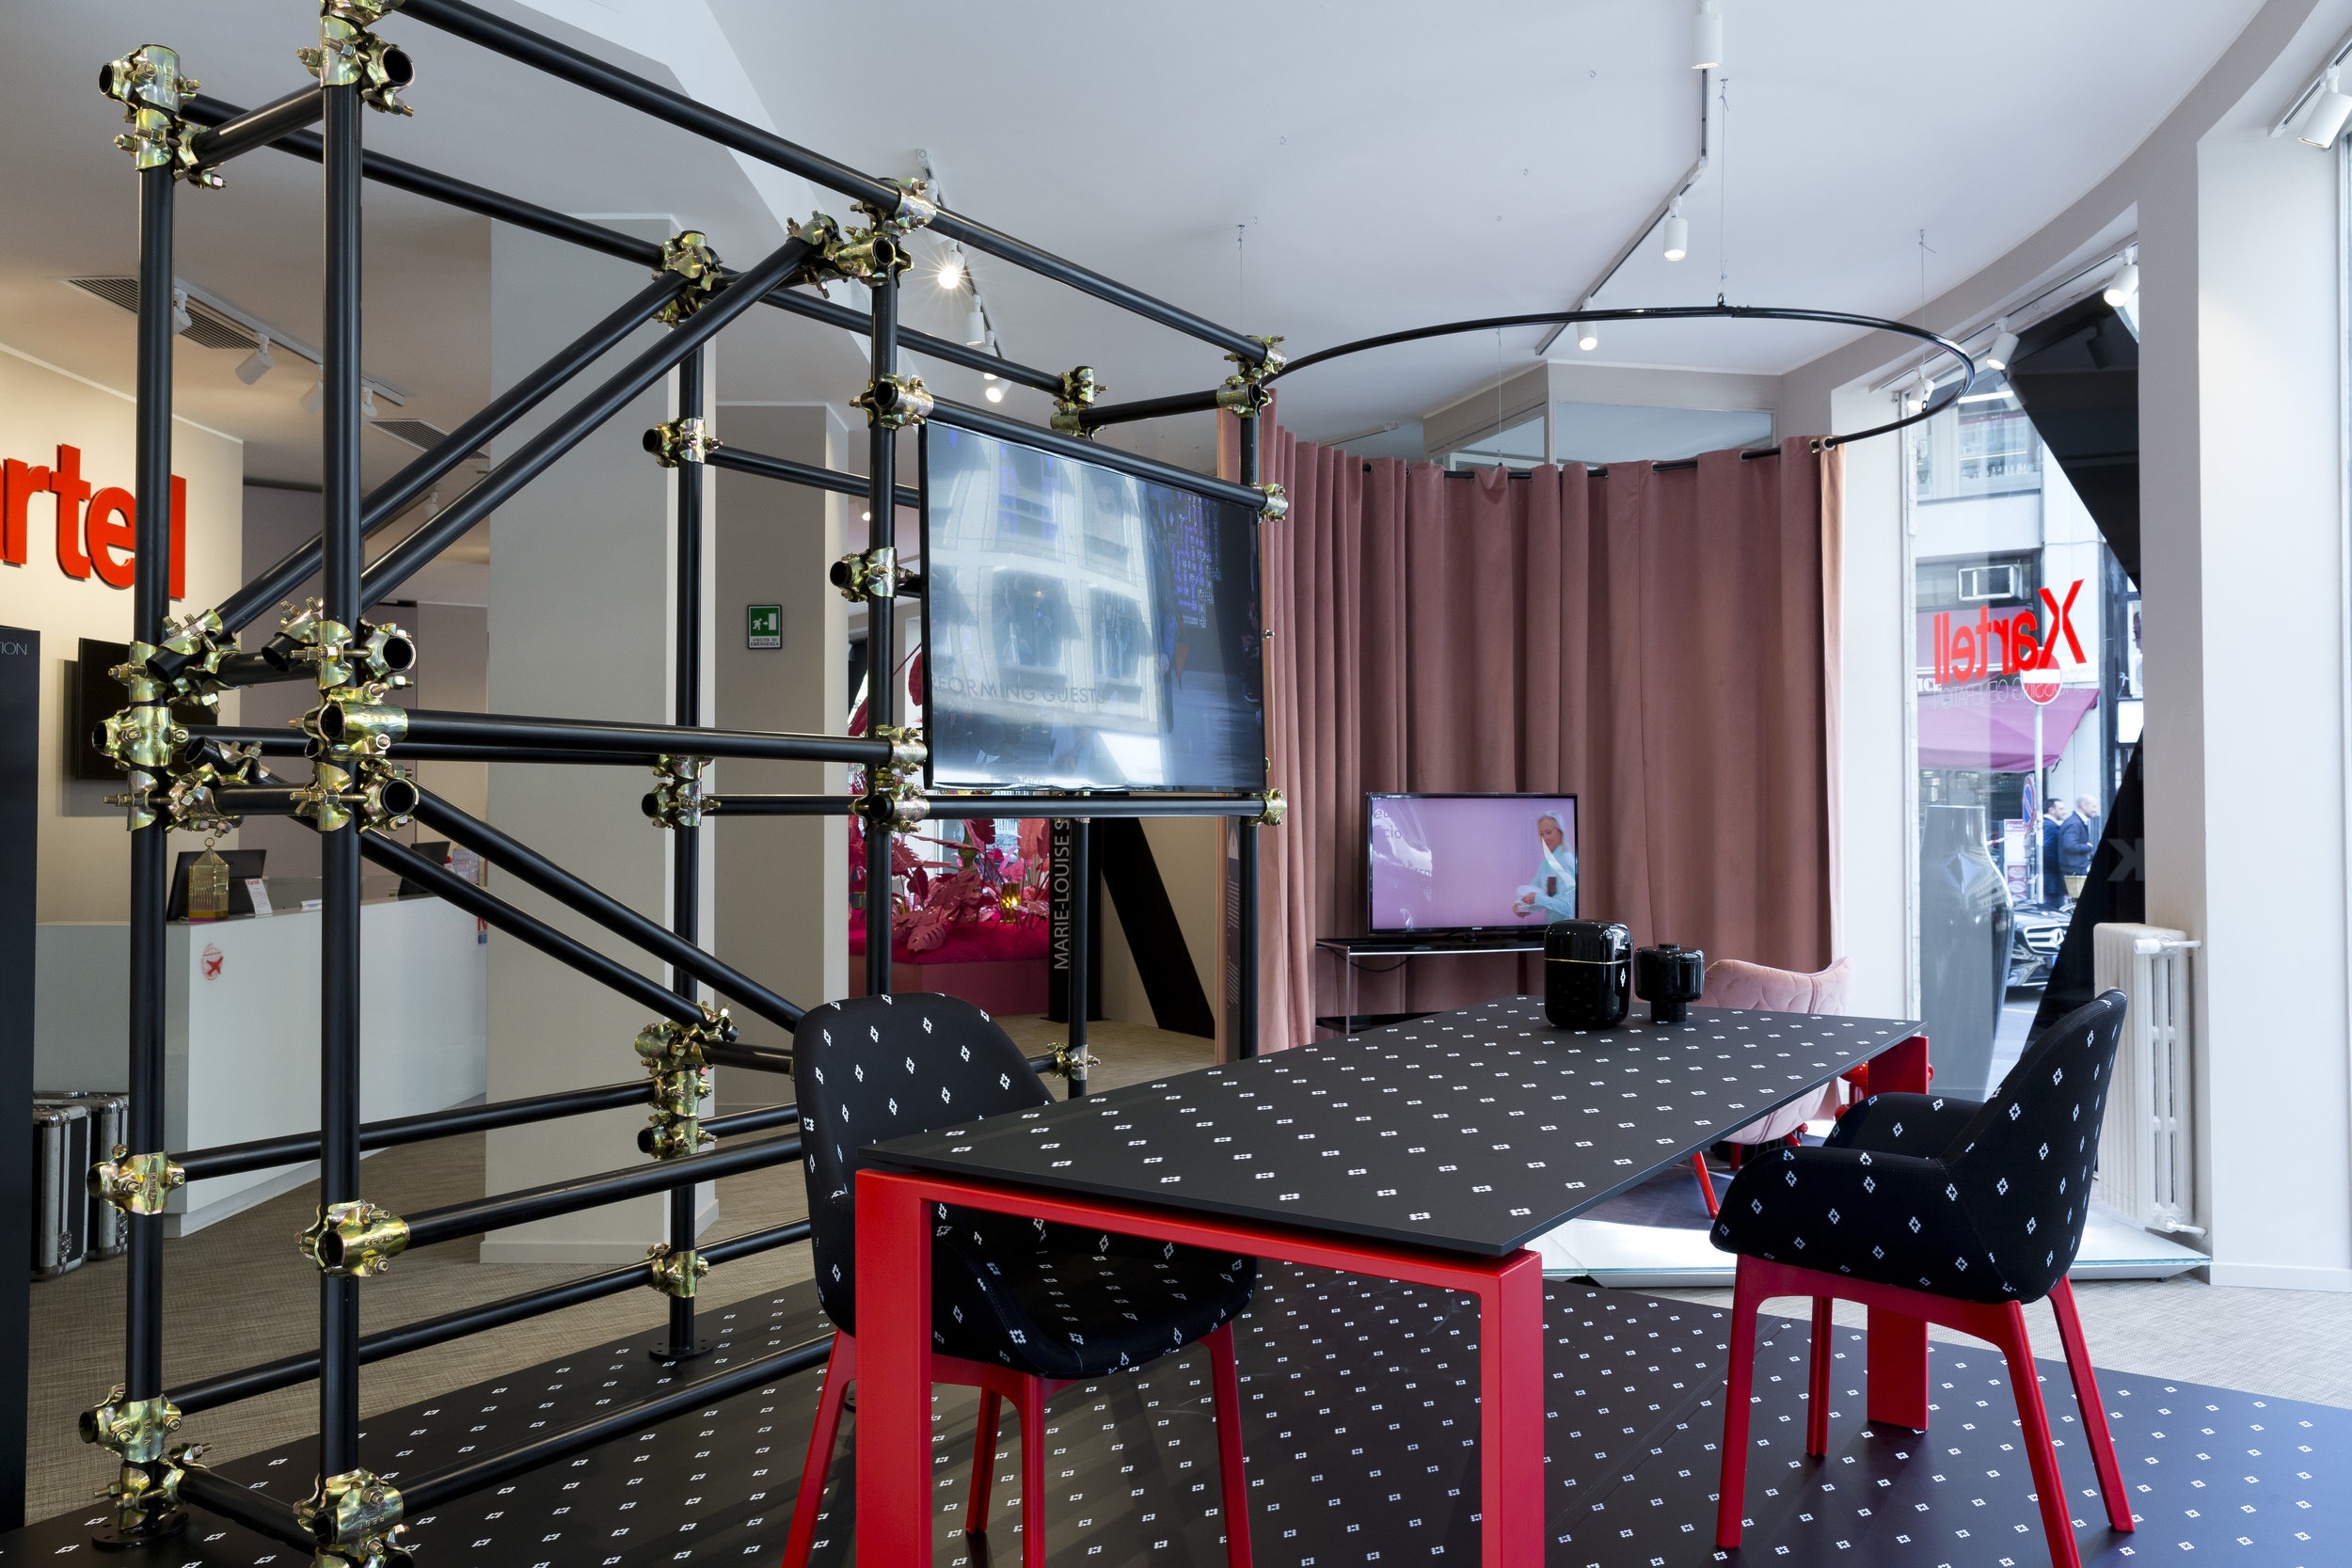 The 'Kartell Crossing Generation' exhibition at their Flagship store on Via Turata.